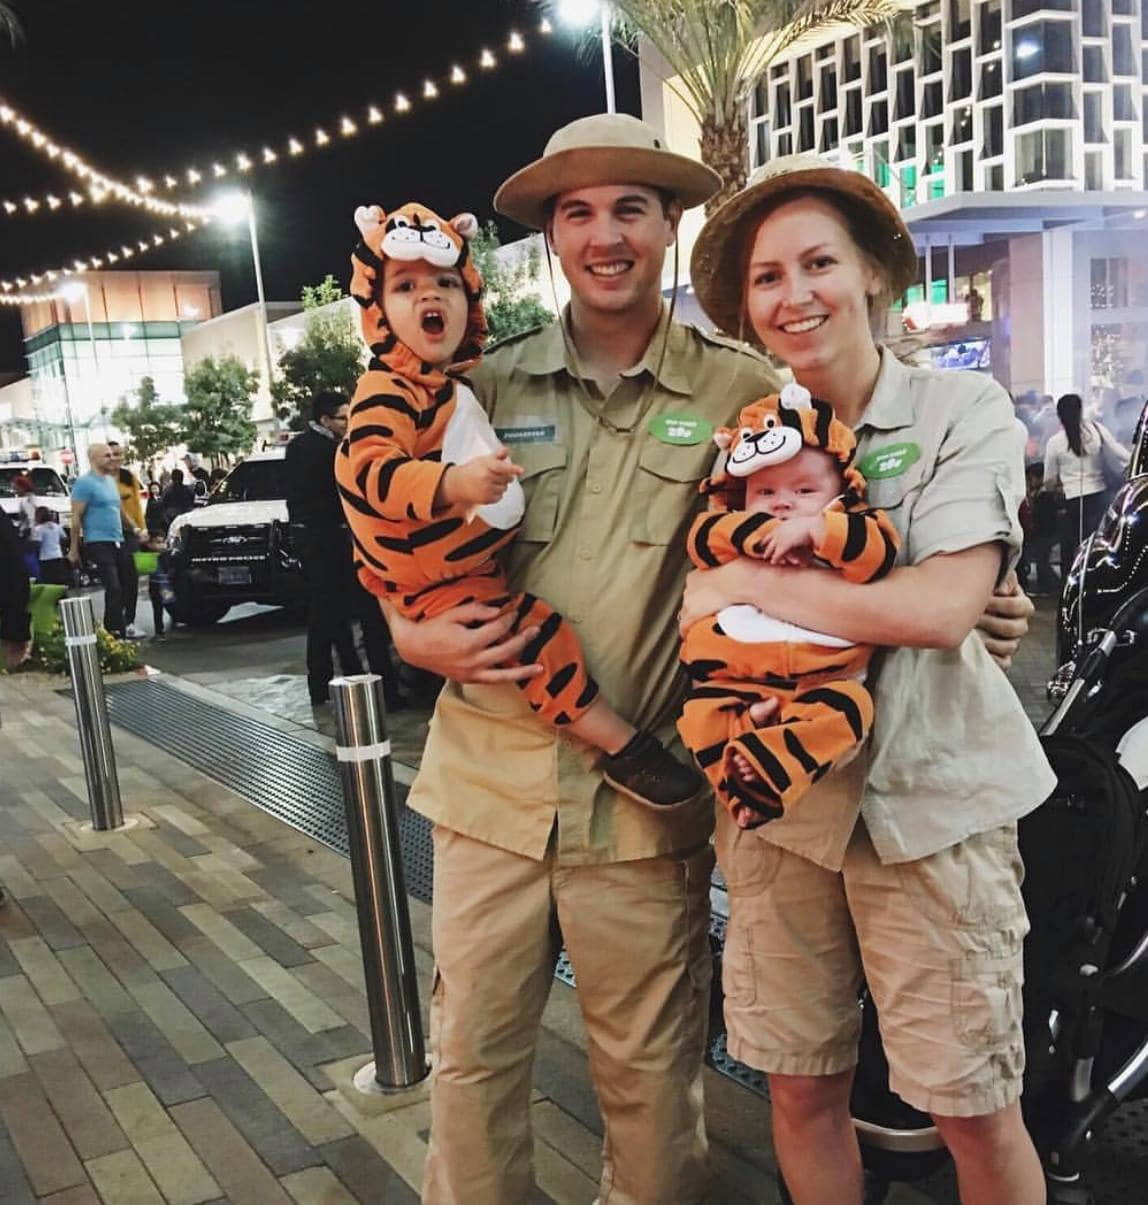 Family wearing zookeeper and animal Halloween costumes poses for picture.